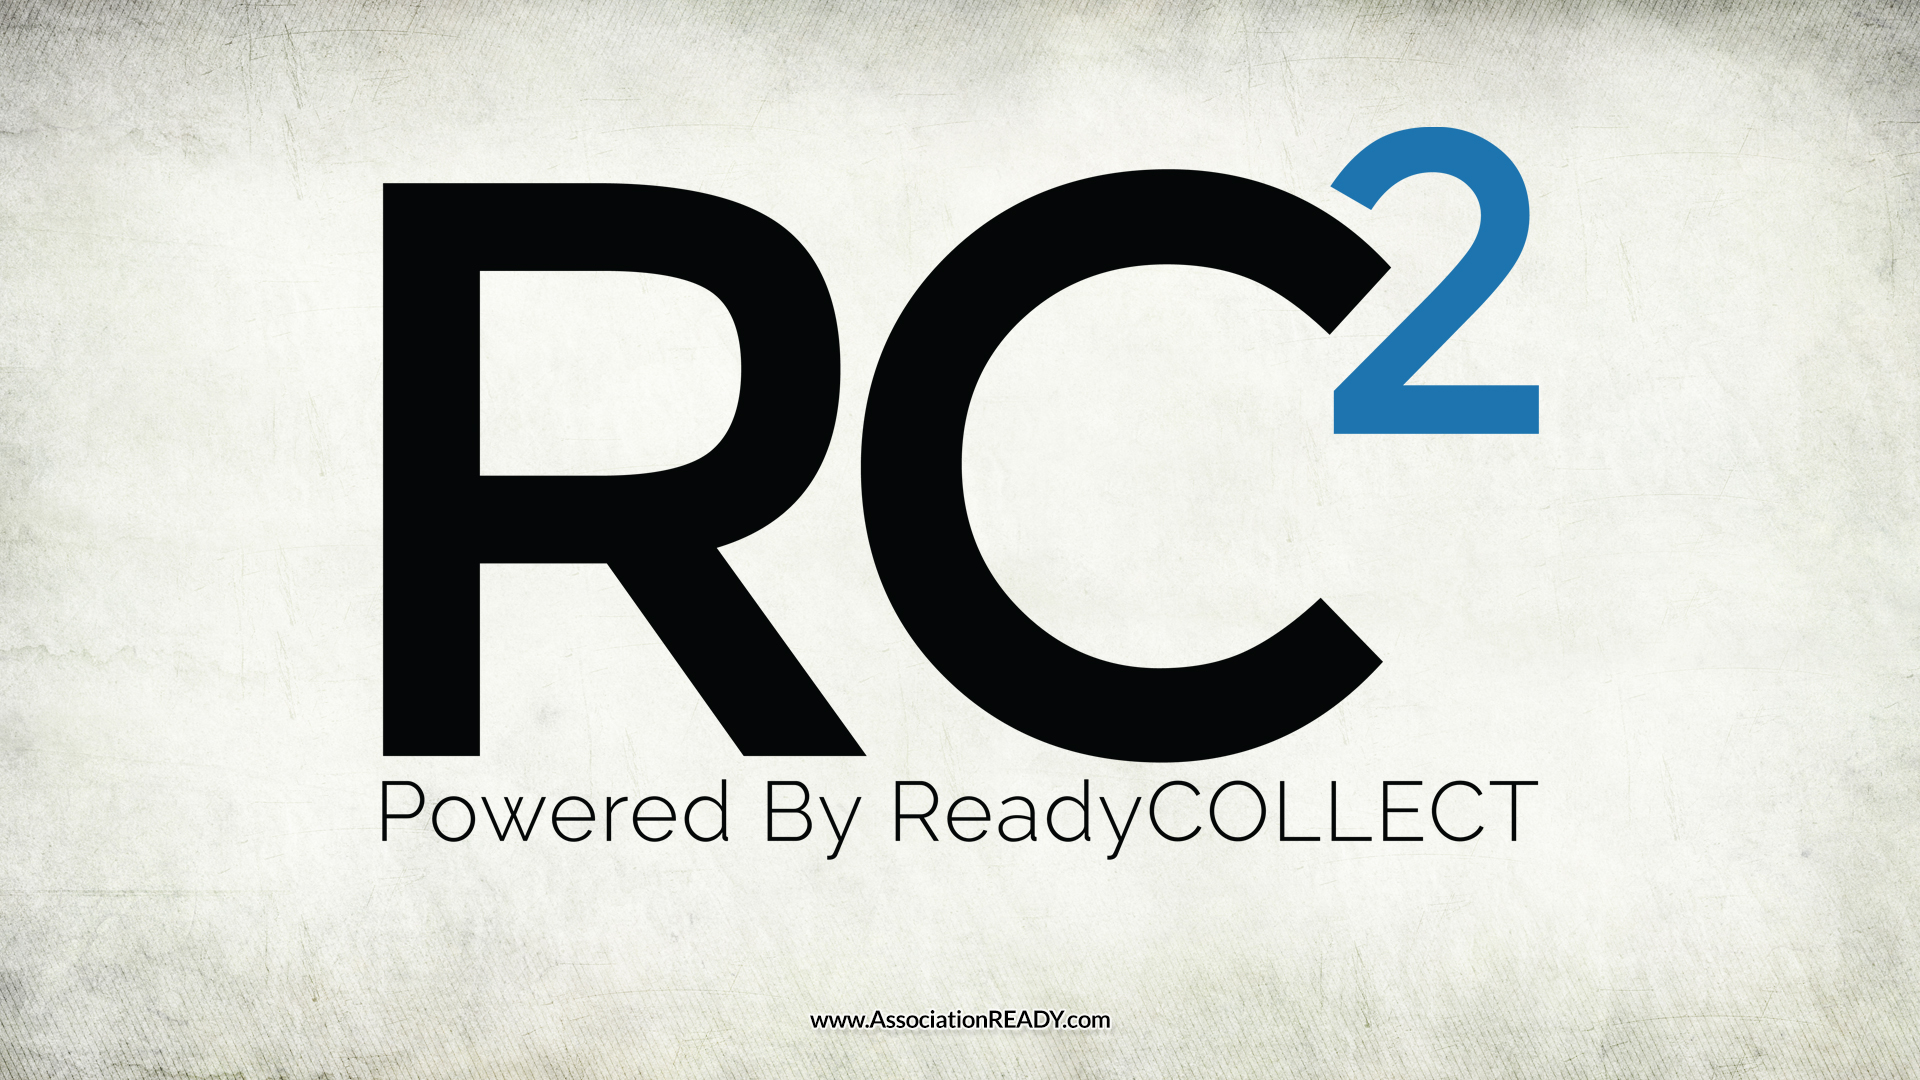 RC2 ReadyCOLLECT Grey Desktop WallPaper - Click to Download Larger Version